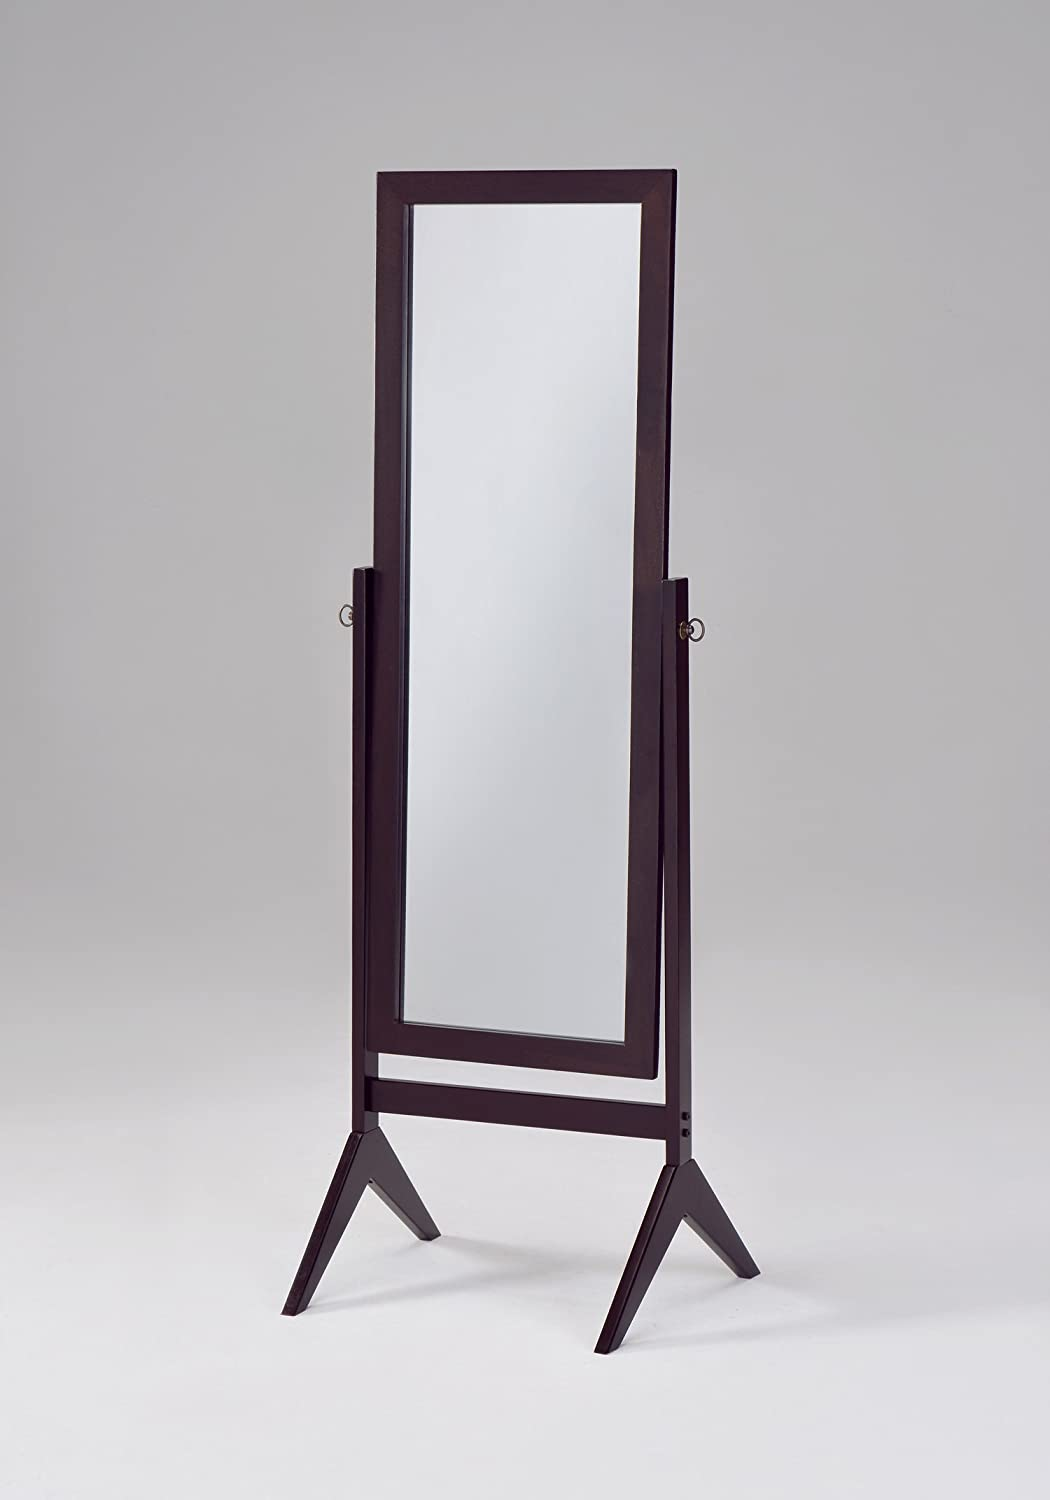 floor dressing mirror full length body cheval tilt free standing bedroom decor ebay. Black Bedroom Furniture Sets. Home Design Ideas